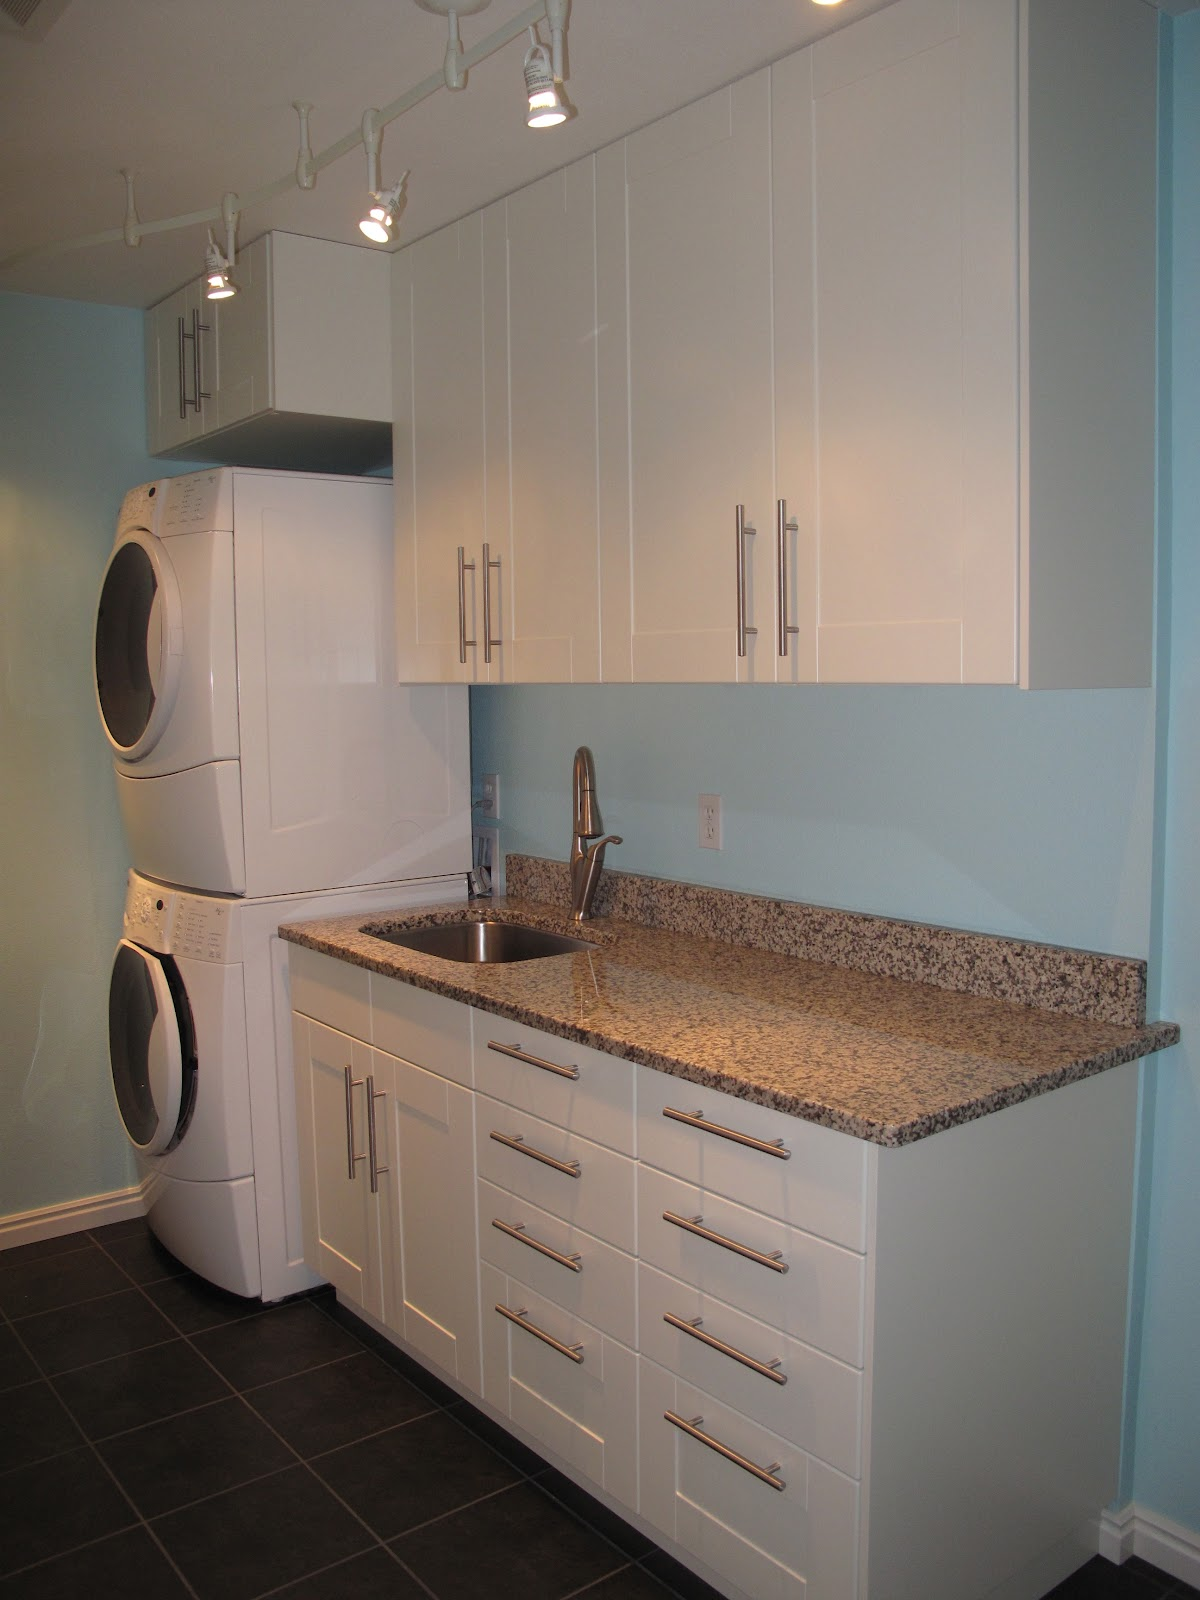 Ordinaire Small Cabinet System With Granite Countertop And Sink Plus Faucet For A  Laundry Room A Washing